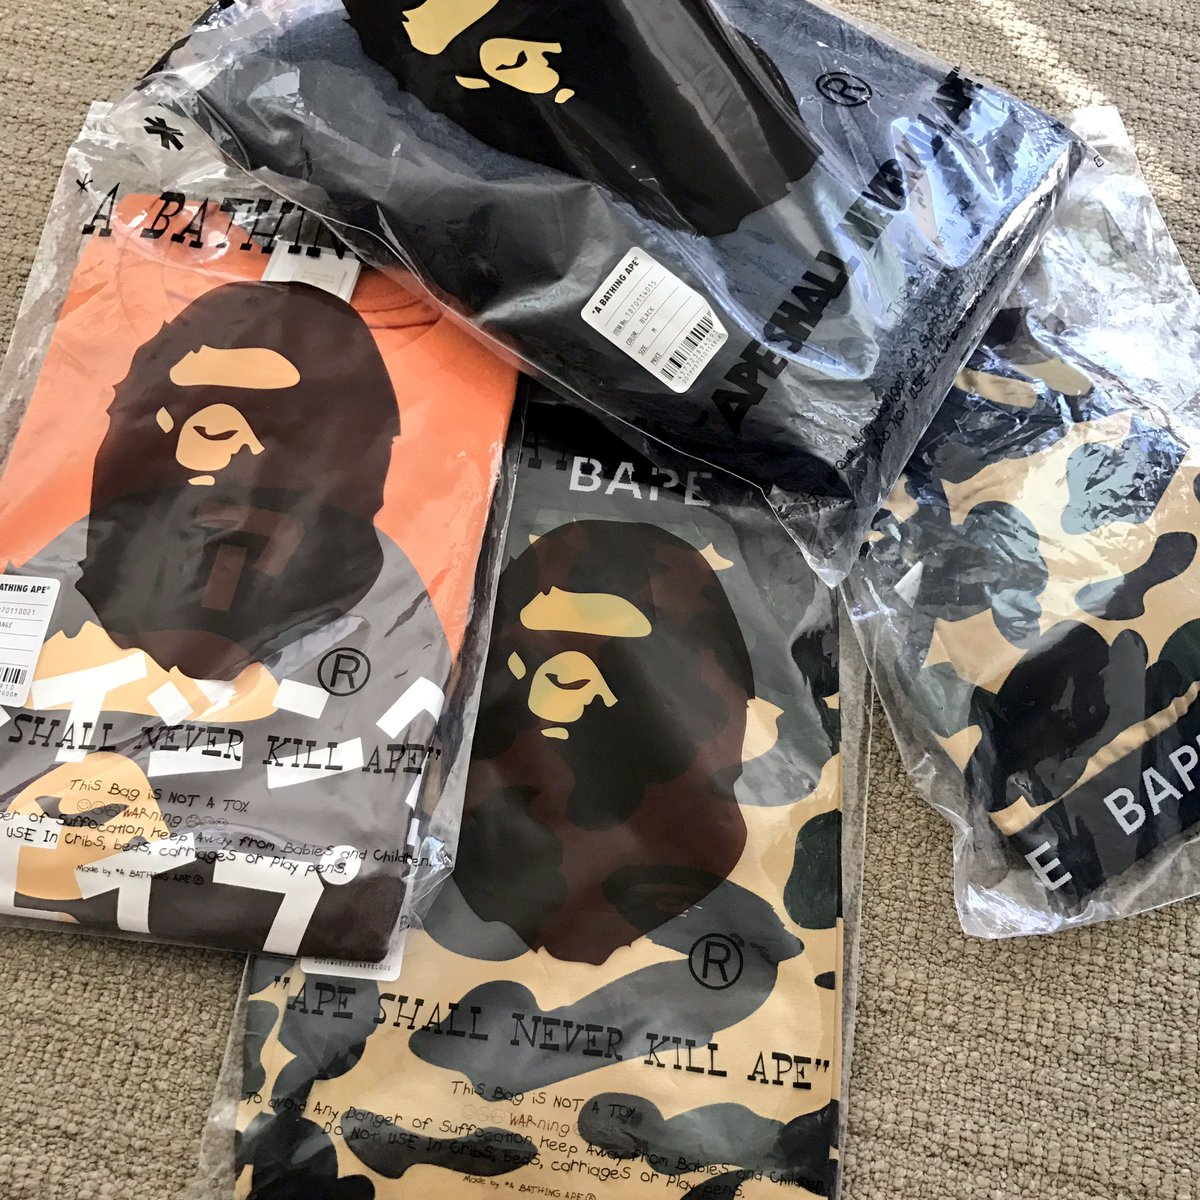 d584bd66dc8 new clothes for tour thanks to bape family for always looking out for me bape  bathingape